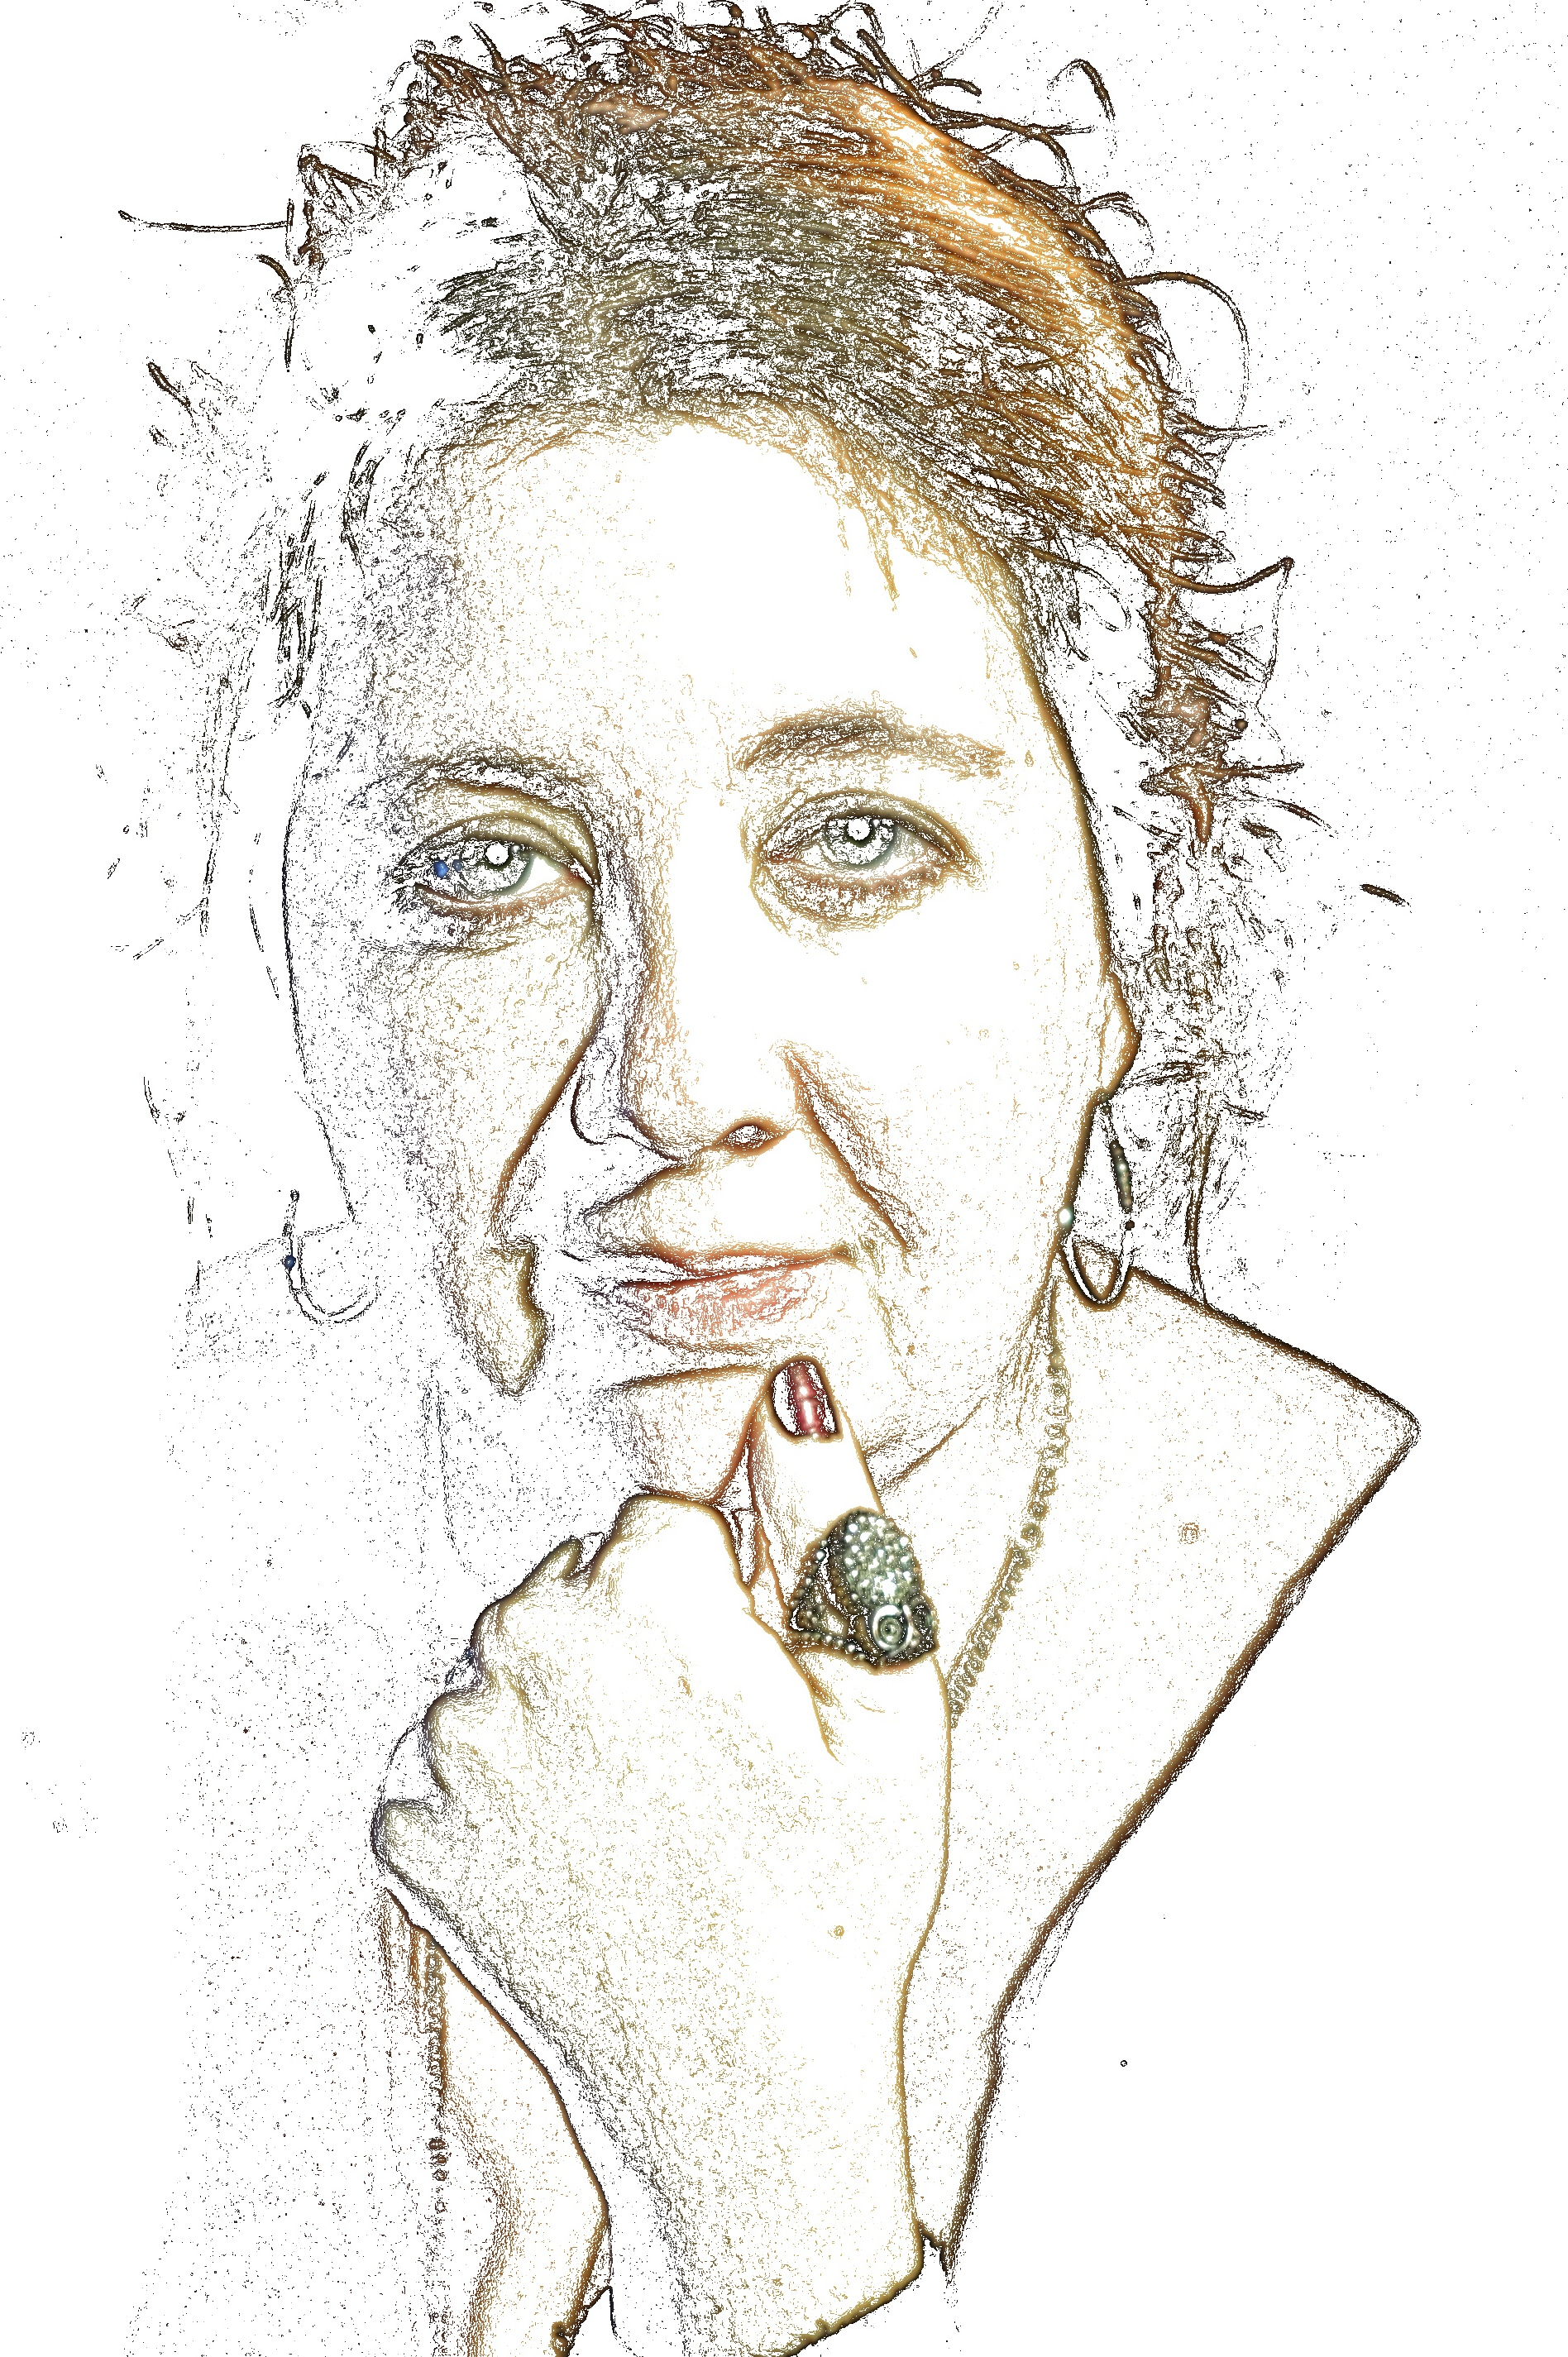 The author is centrally-featured in an whitewashed photo nearly devoid of color except for spikes of auburn hair, a hint of blue eyes, a pink almost-smile (or is it a smirk?) and a red-polished thumb resting on the author's chin (much like an artist surveying their work). The thumb sports a clunky silver ring which, upon closer inspection, reveals itself to be an owl perched upside-down. Abstract lines suggest a shoulder, a plunging neckline, the chain of a necklace, a freckled hand, and the cuff of a sleeve; also, the lines of a face content to gaze directly at the viewer, even as the viewer gazes upon the face.